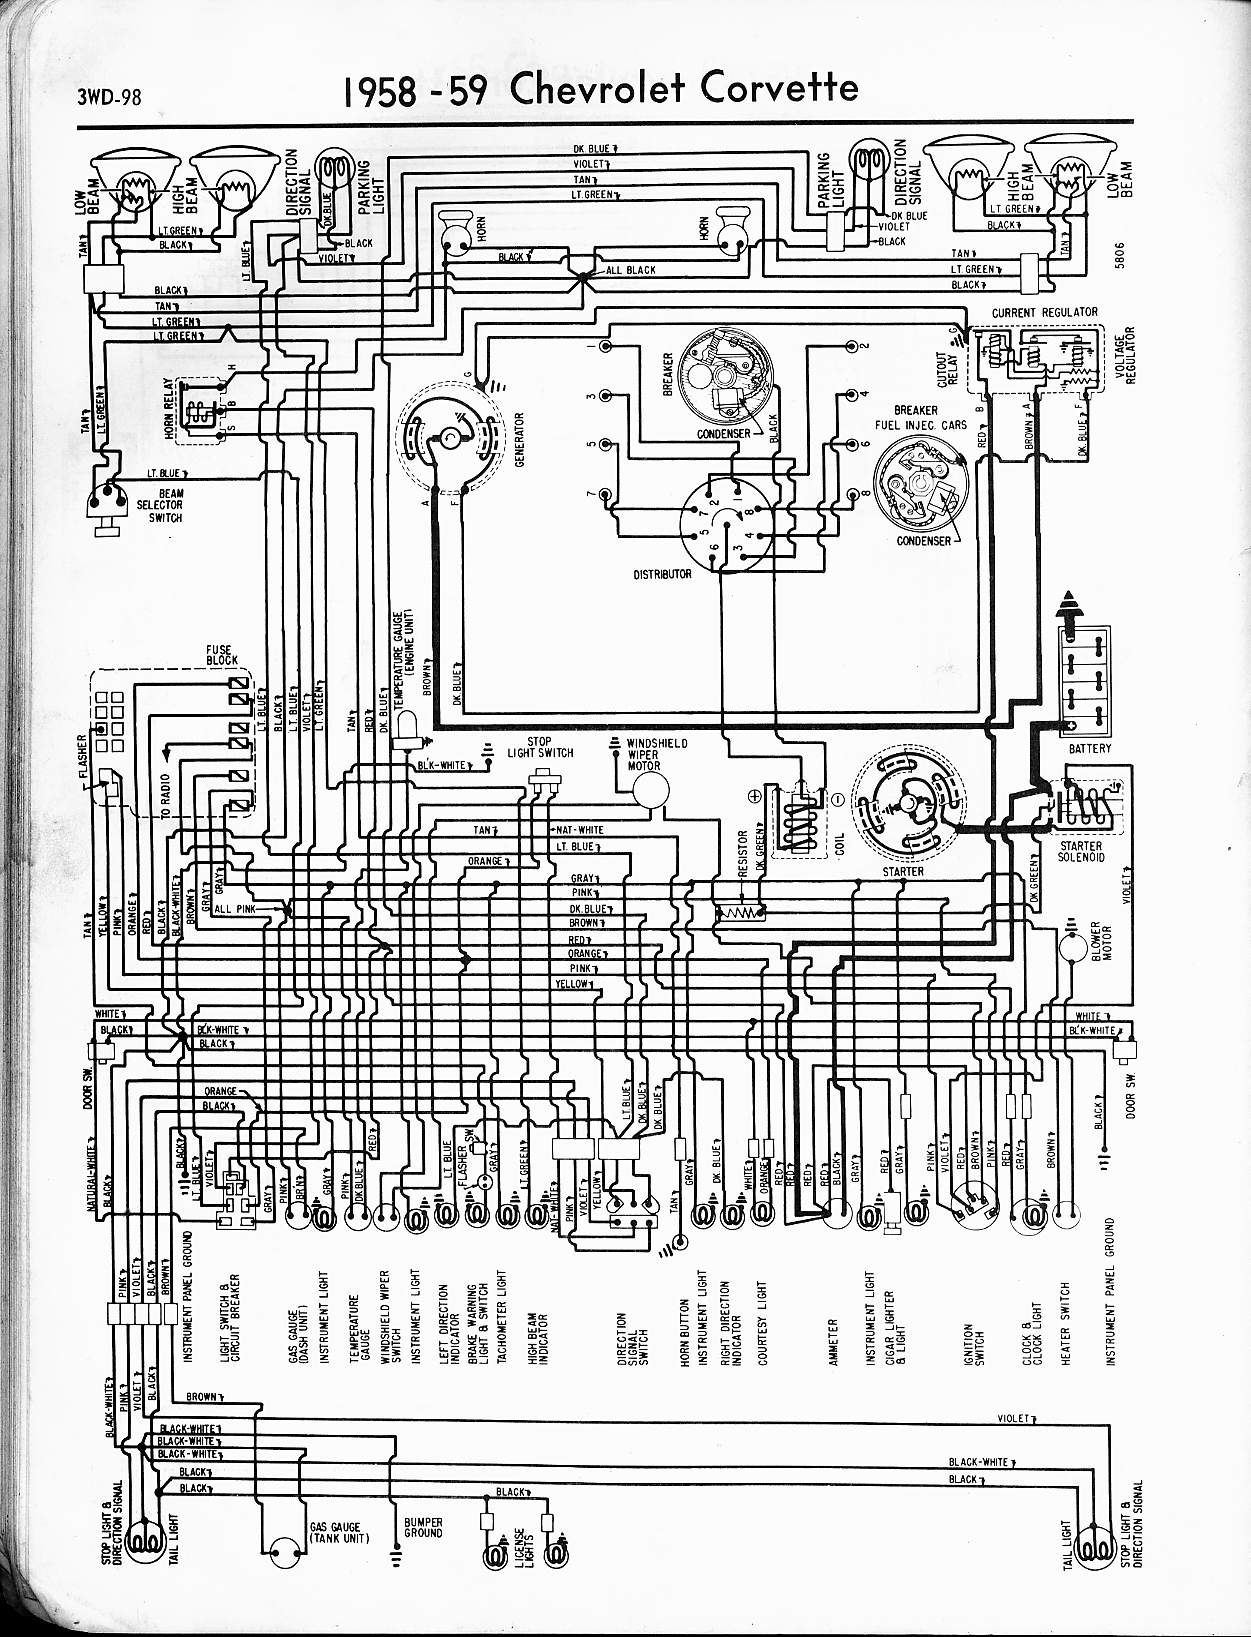 MWireChev58_3WD 098 100 [ car ignition wiring diagram ] affordable nice 1968 1960 corvette wiring diagram at fashall.co